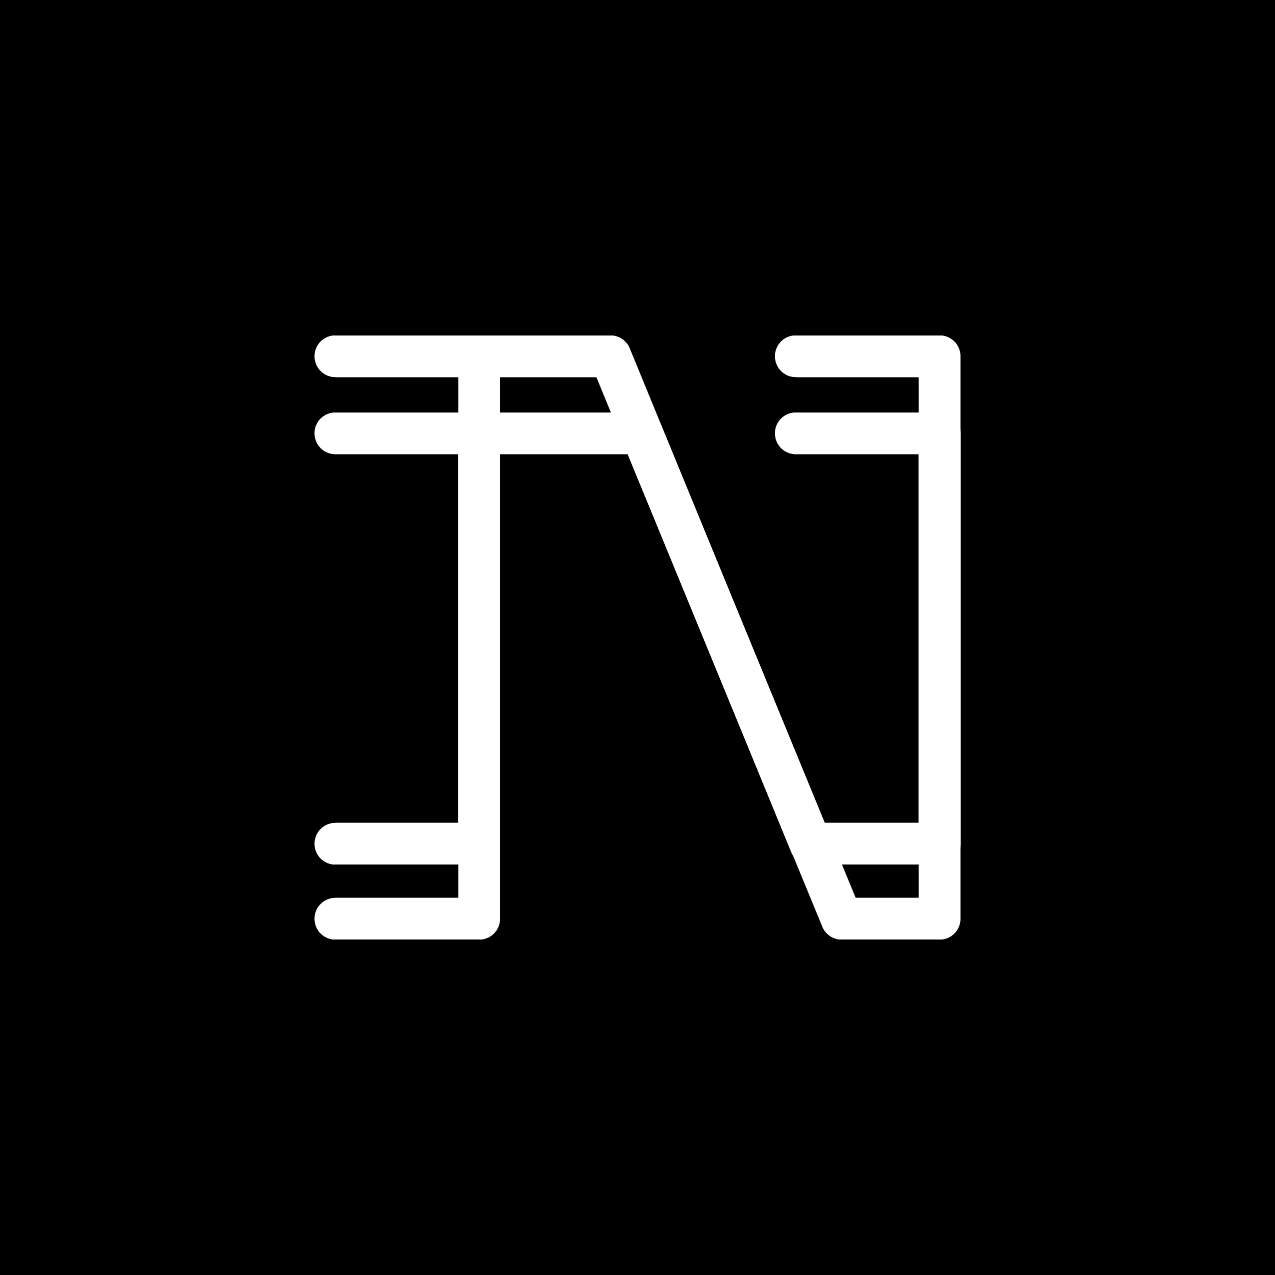 Letter N8 Design by Furia